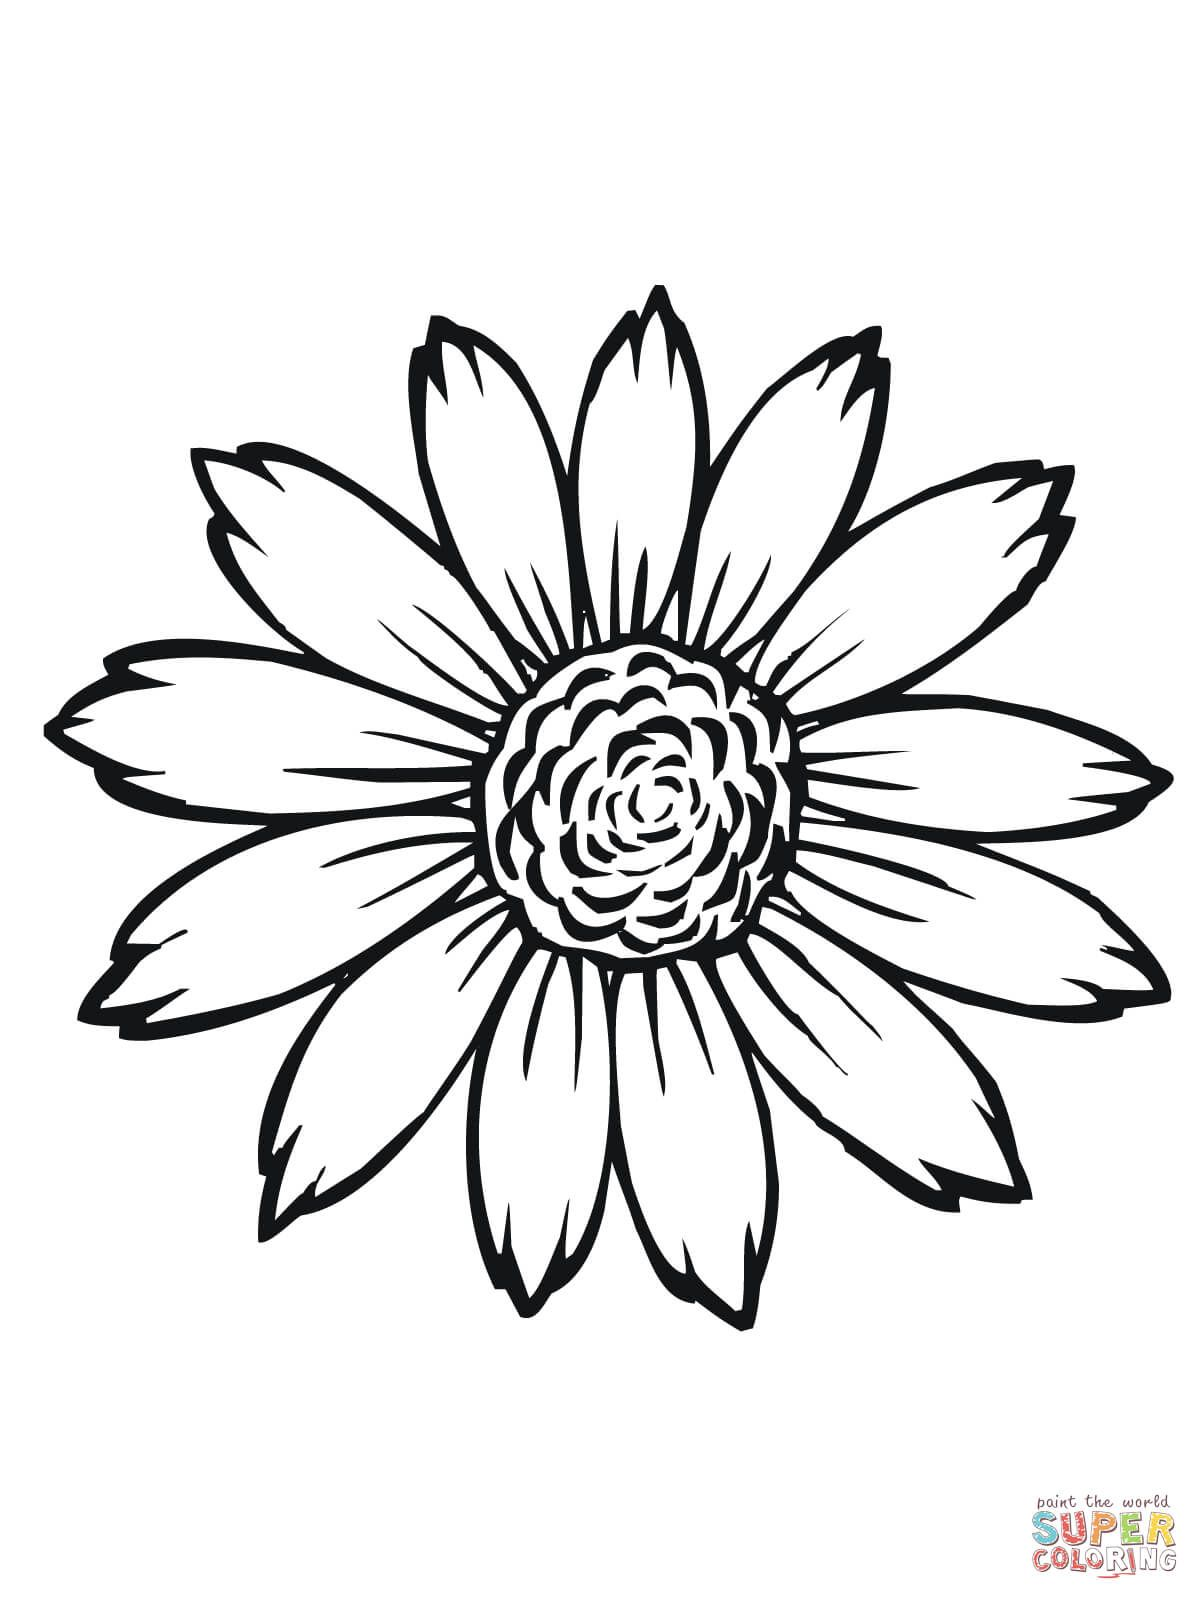 Sunflower Flower Coloring Pages Printable